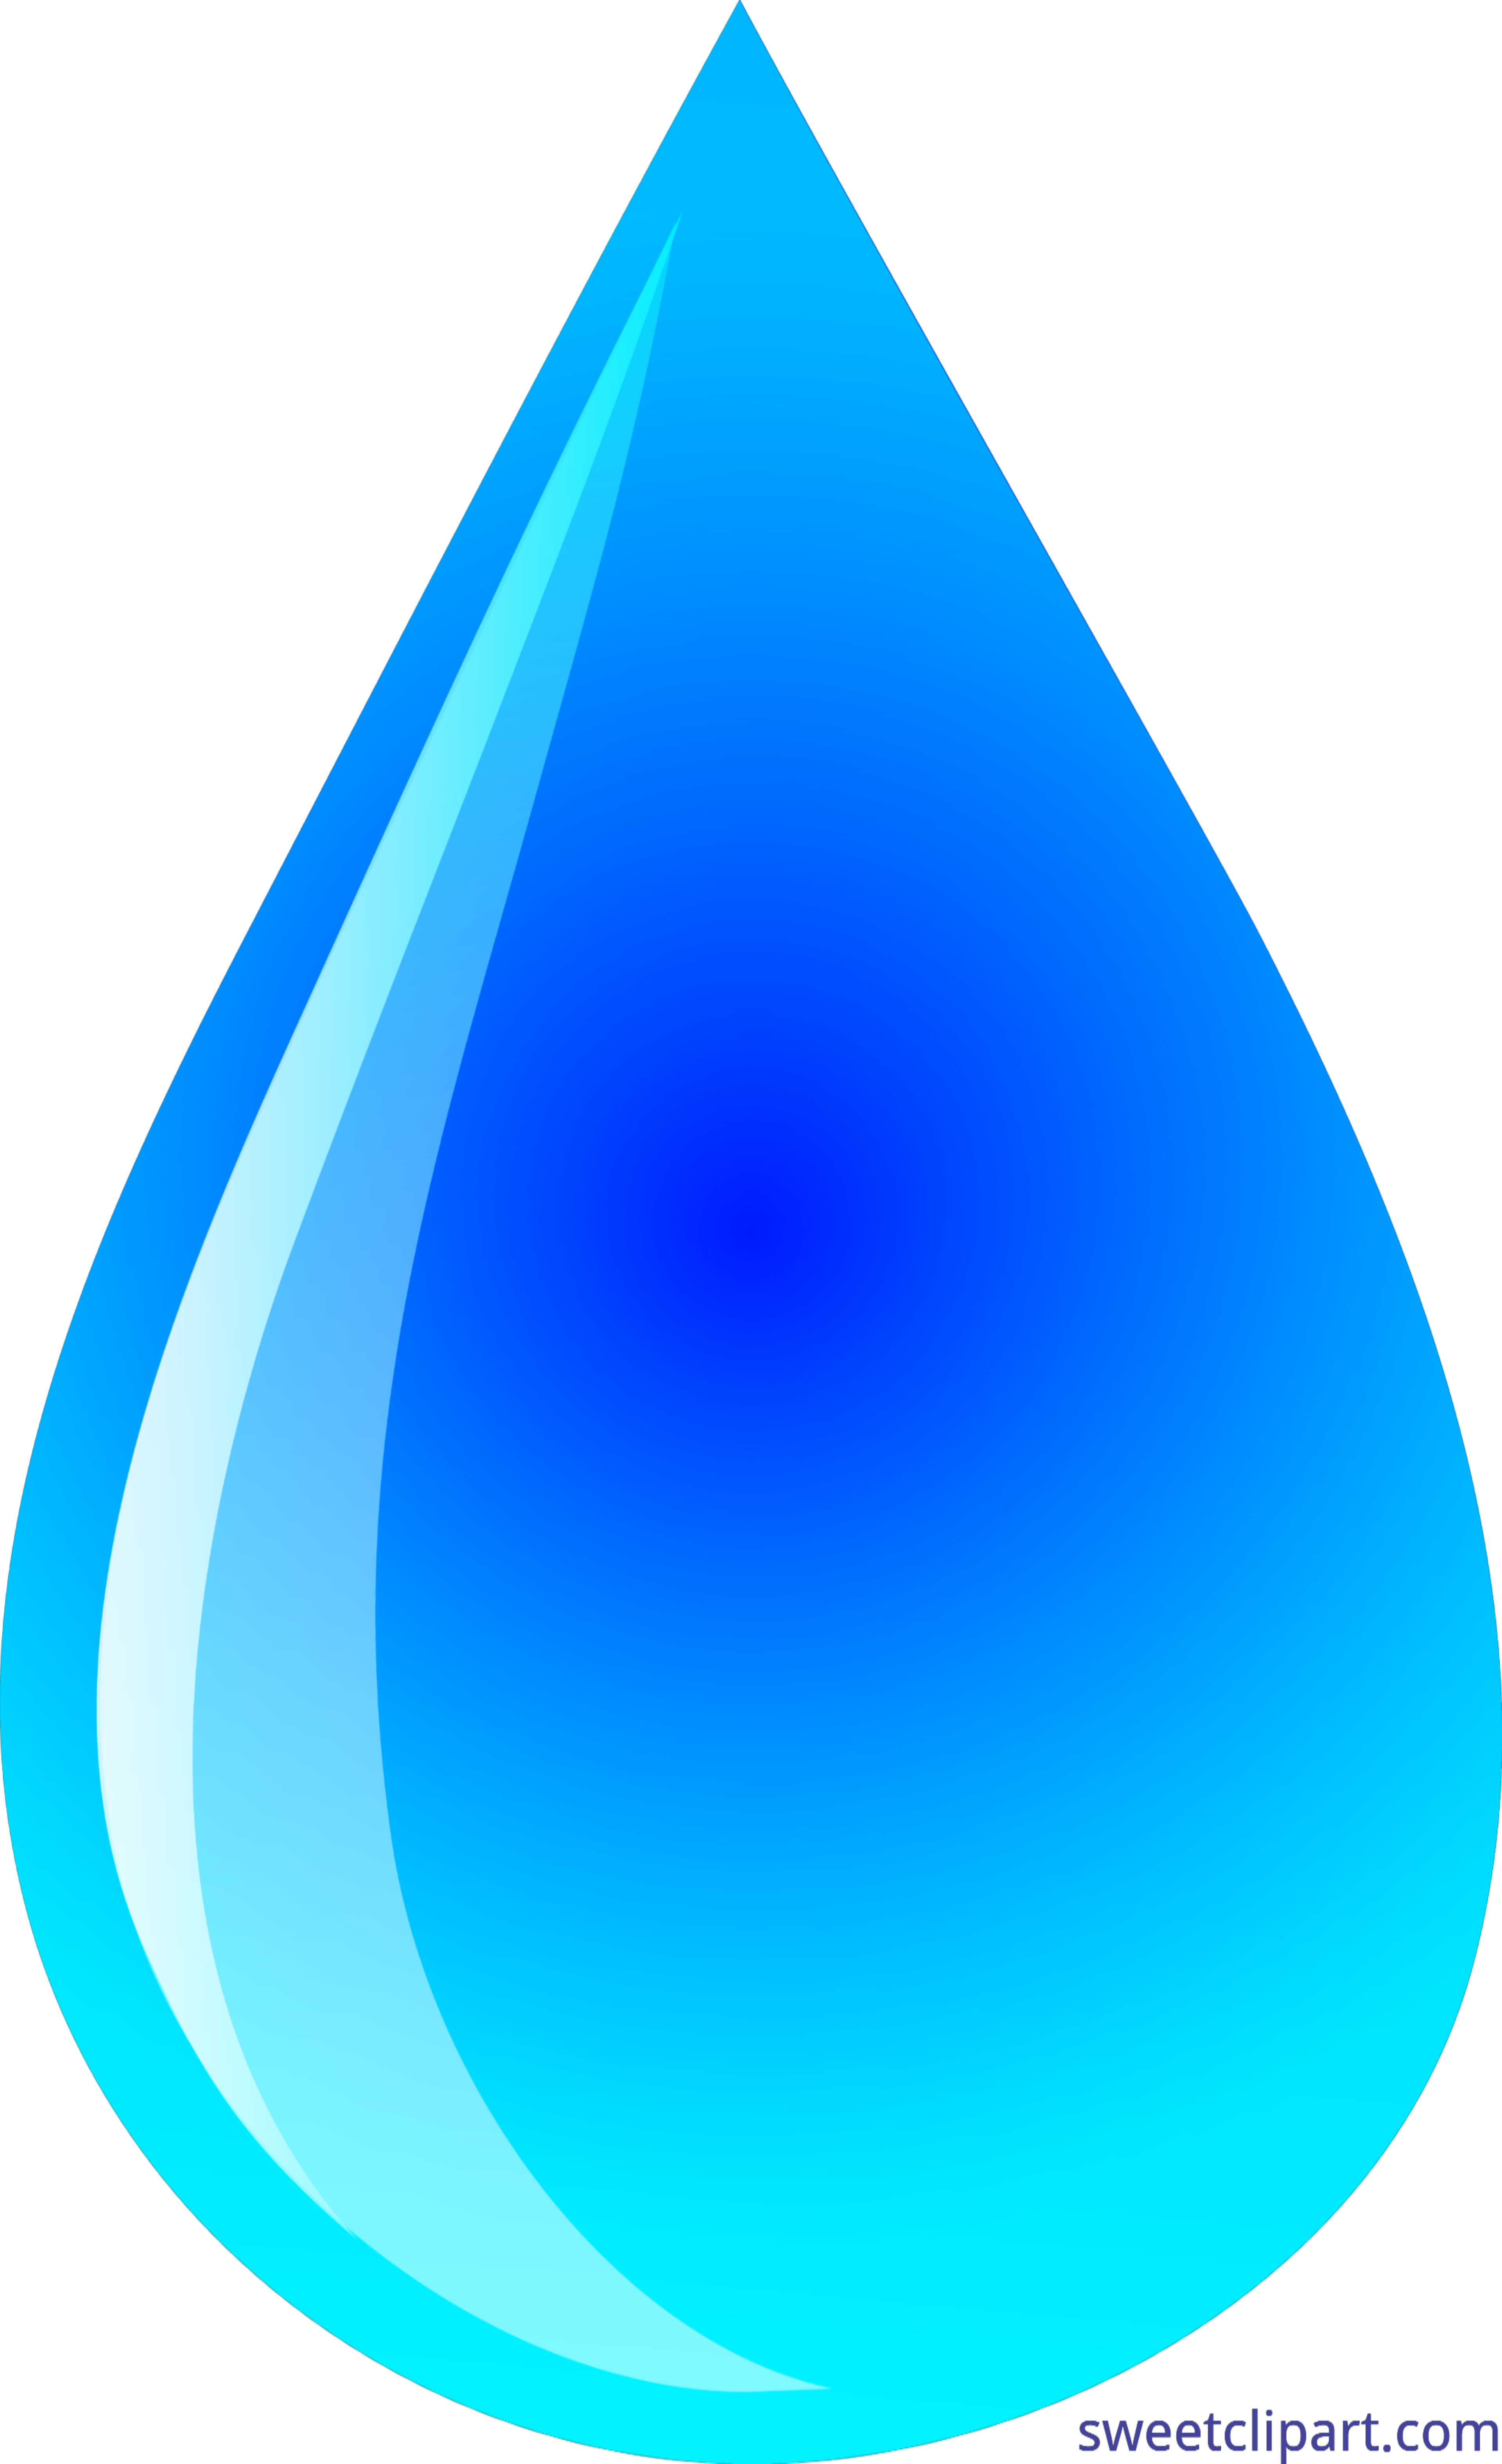 Clipart earth water. Shiny blue droplet clip